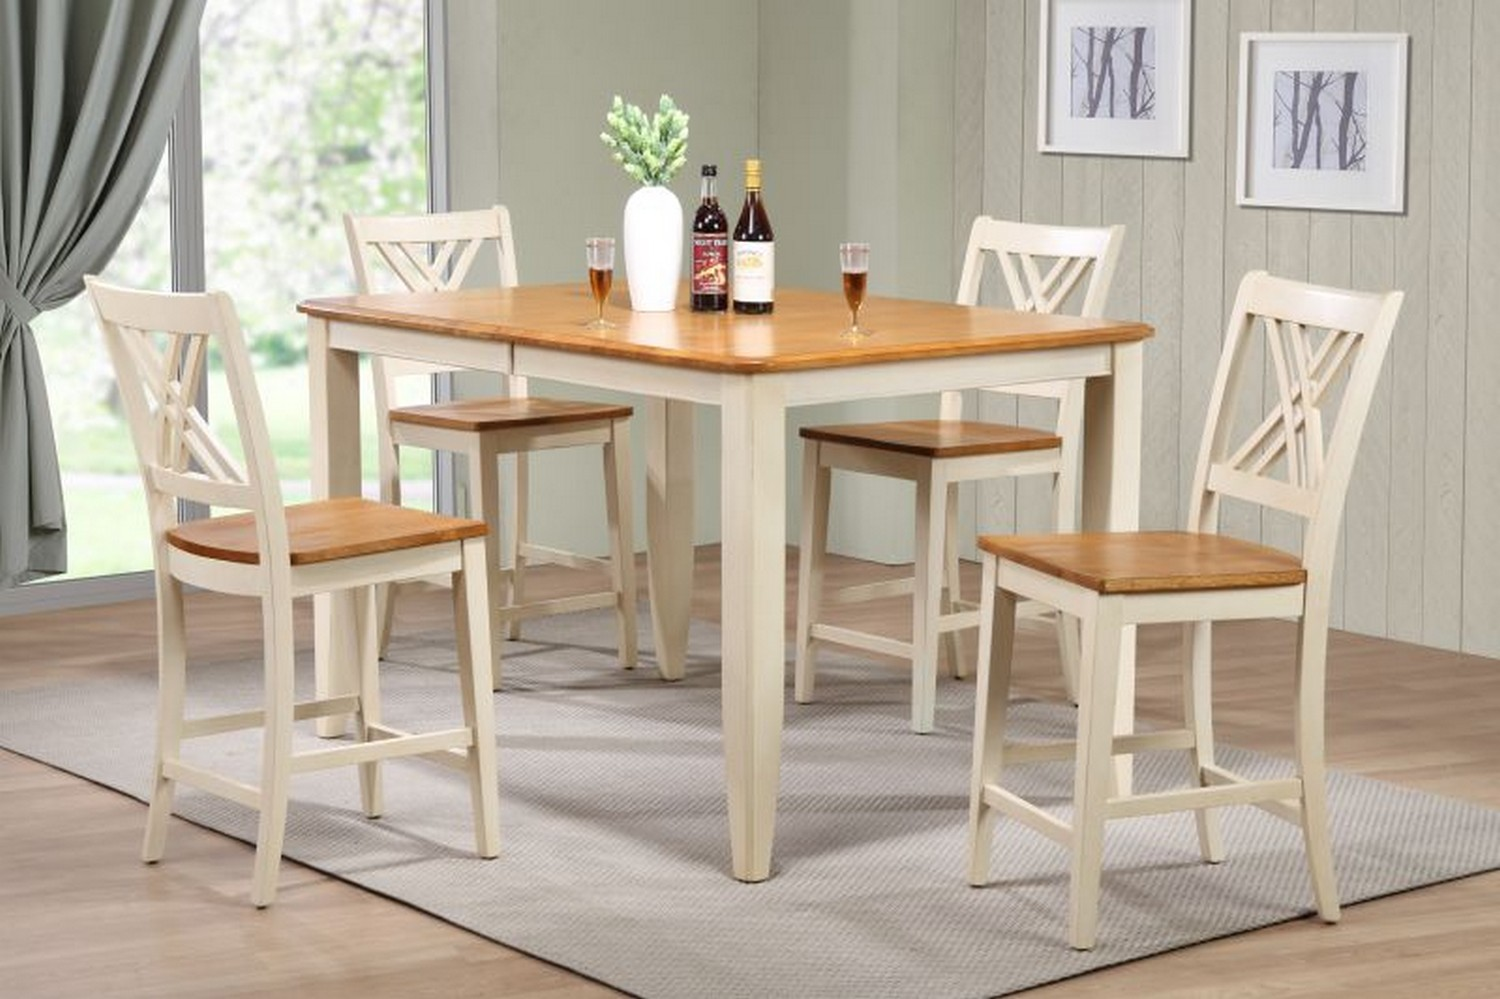 Iconic Furniture RT67 Caramel/Biscotti Double X- Back Counter Height Dining Set